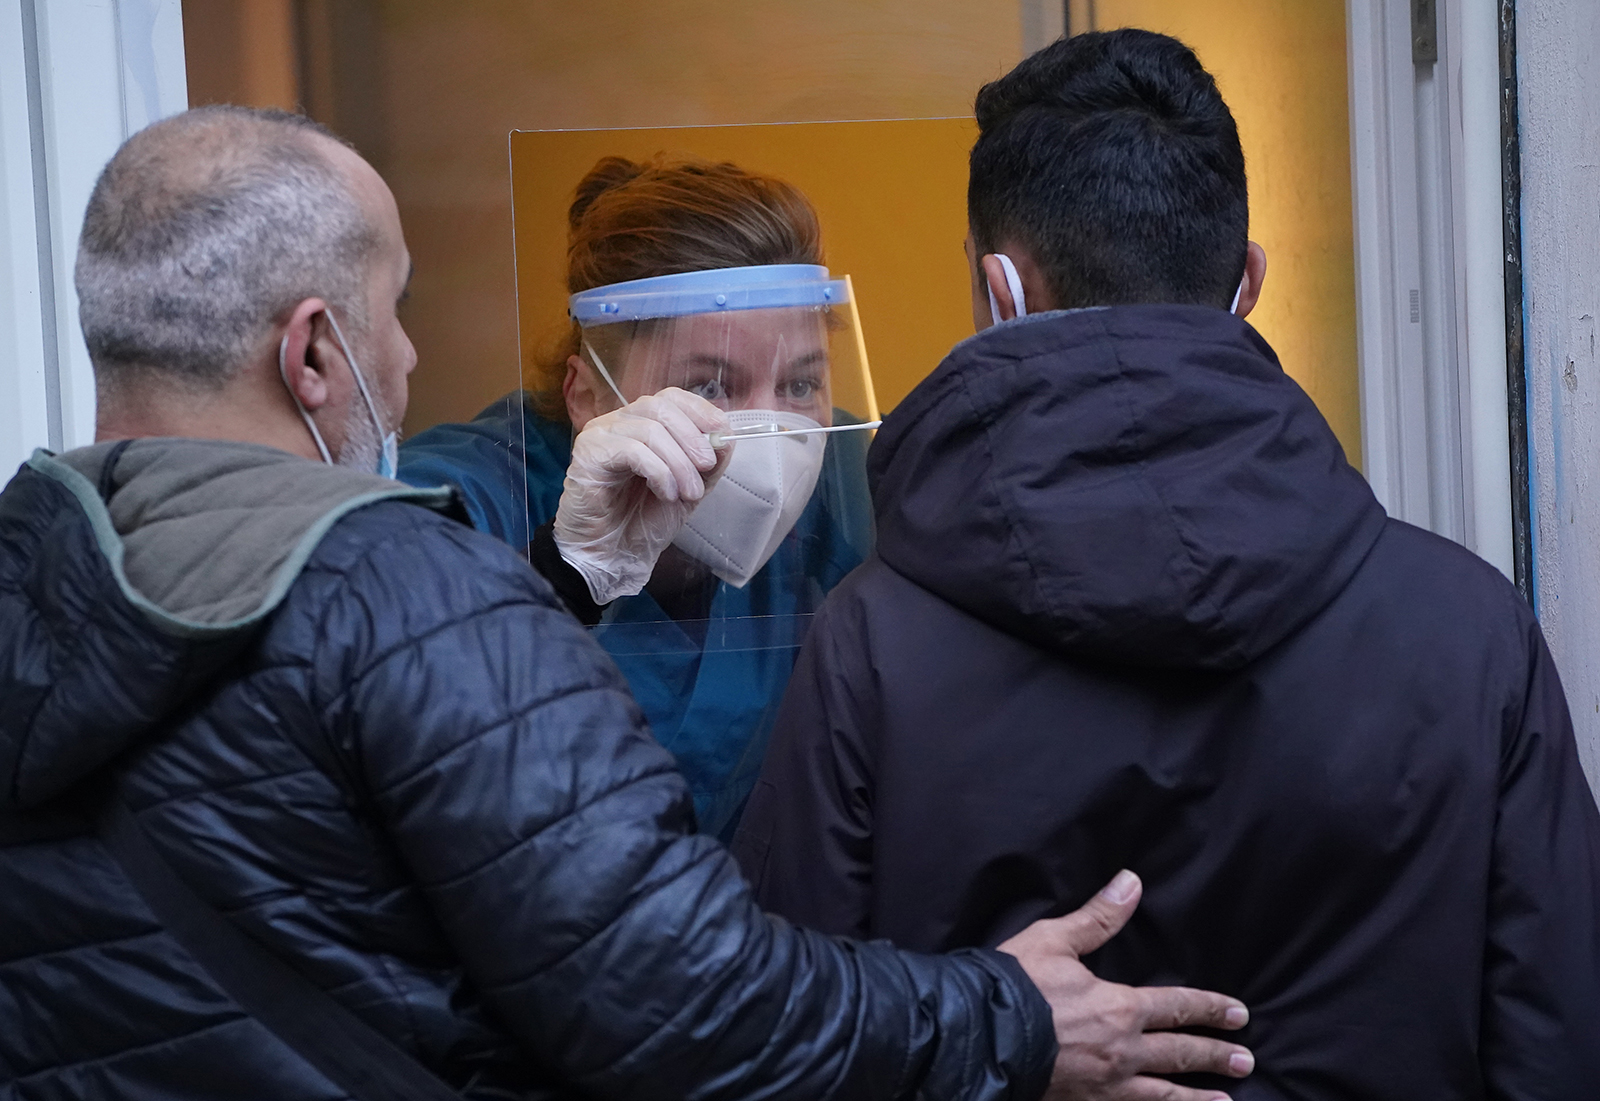 A medical assistant takes a throat swab sample from a man through the window of a medical practice for a coronavirus test in Berlin, Germany, on October 12.